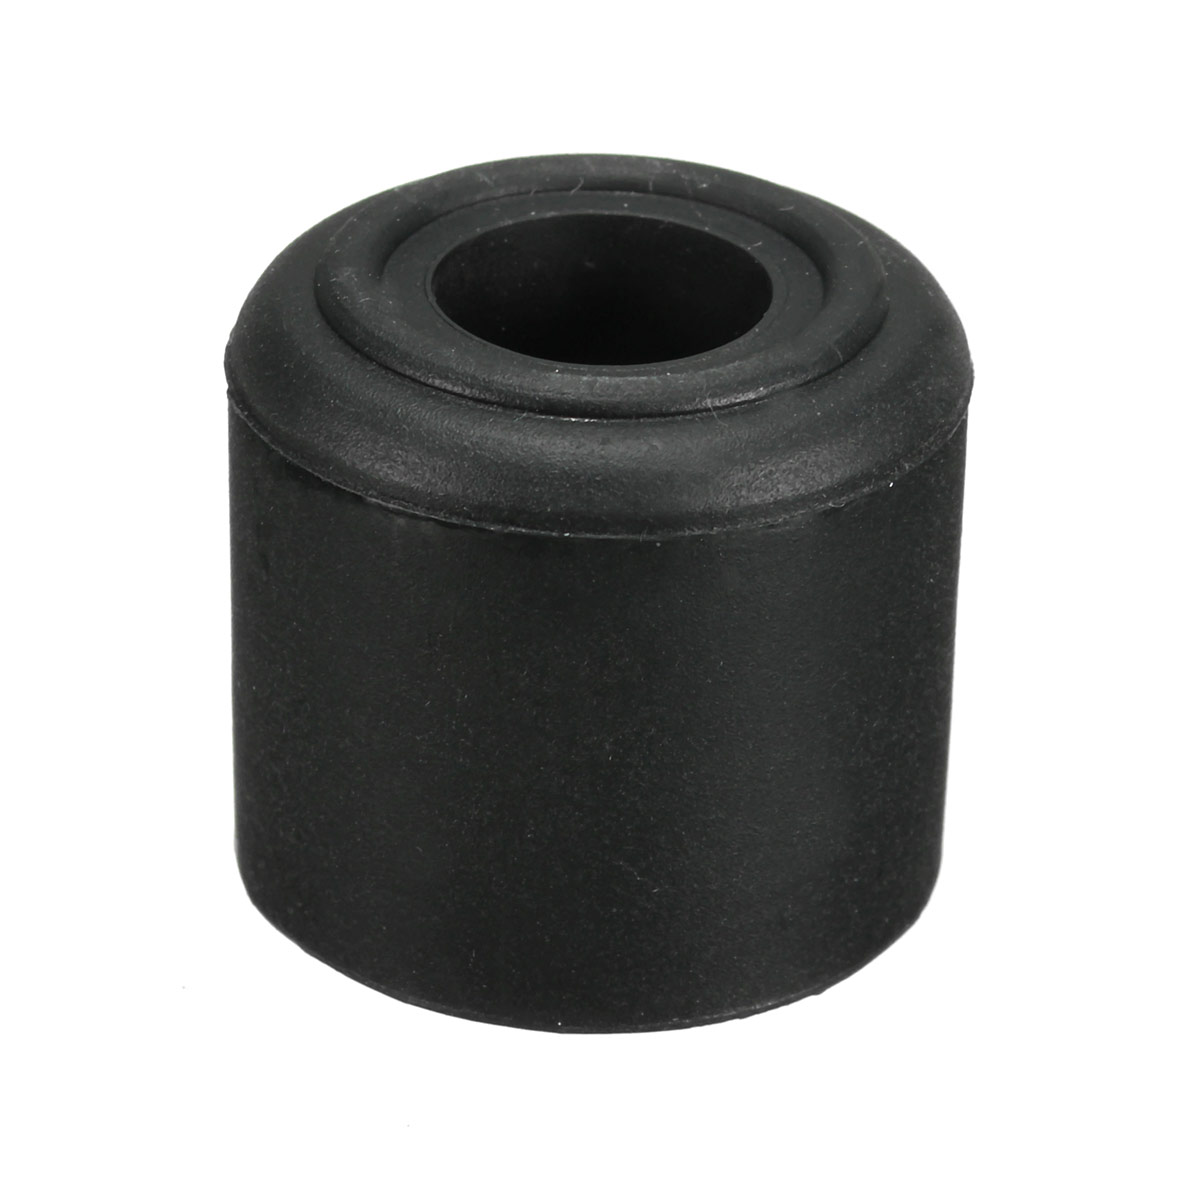 1 2pcs black white rubber door stop stopper cylinder jam wedge floor holder 28mm ebay - Door stoppers rubber ...